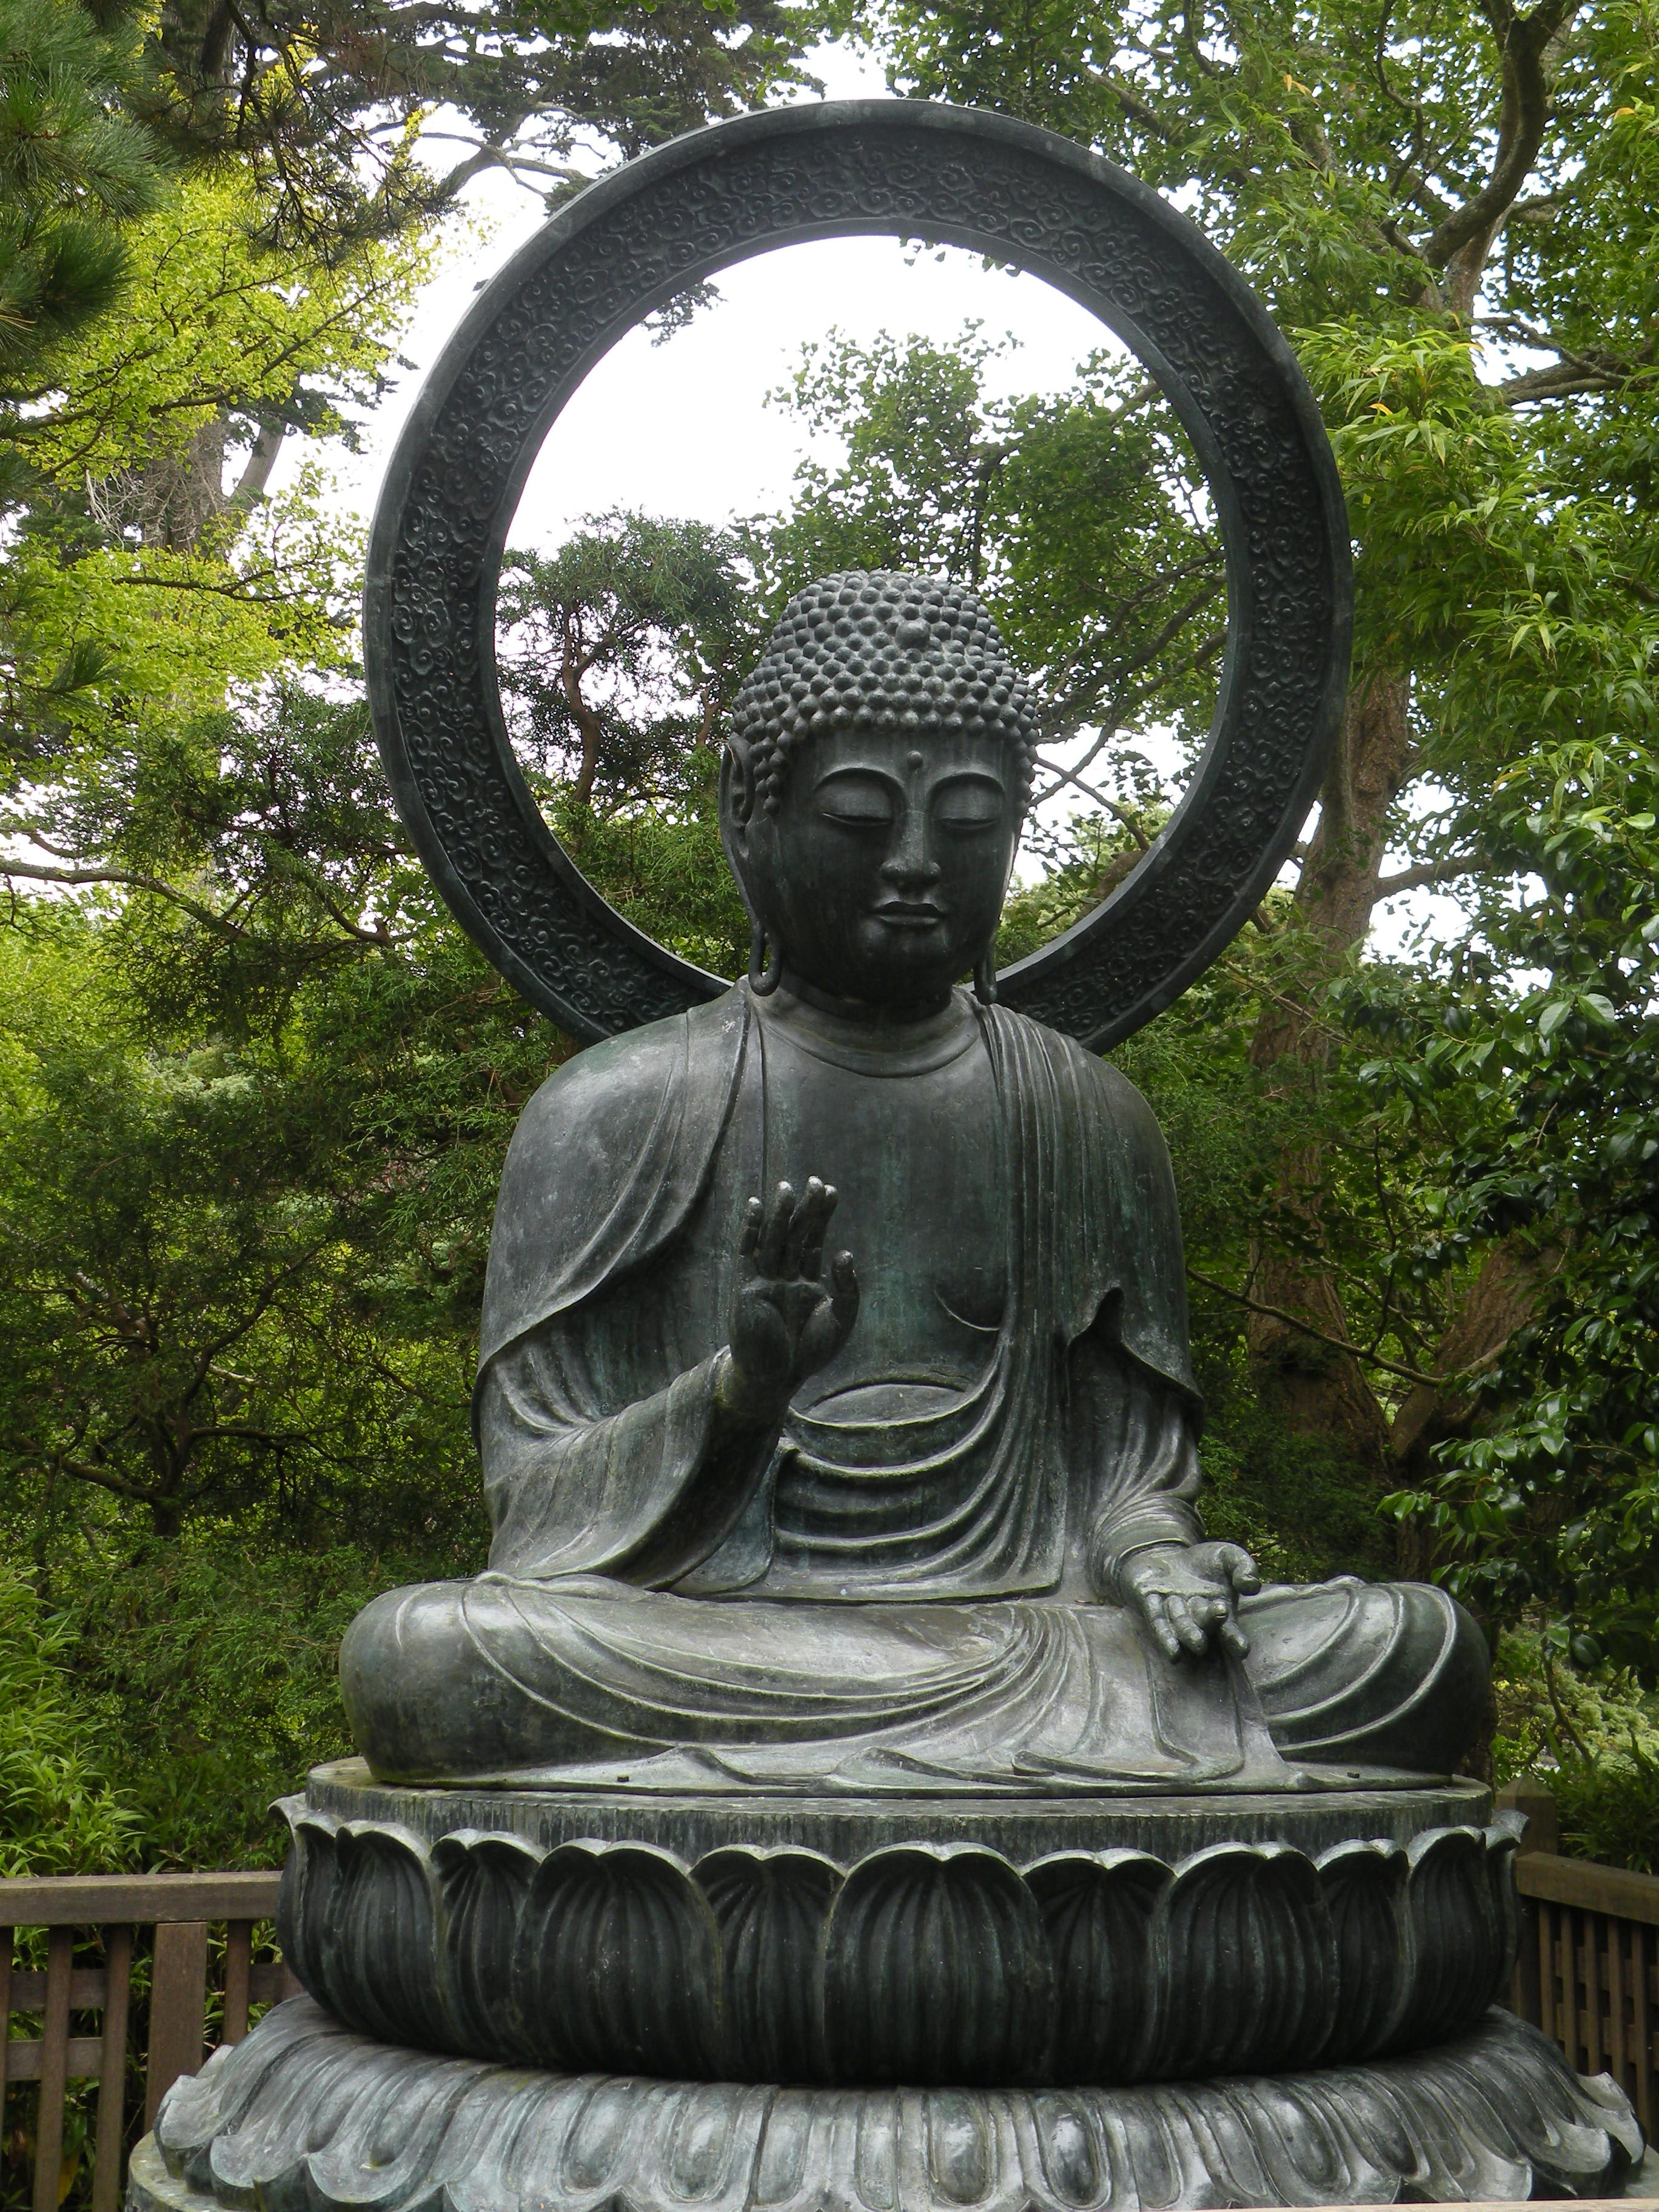 I would love to welcome this Buddha to my garden.